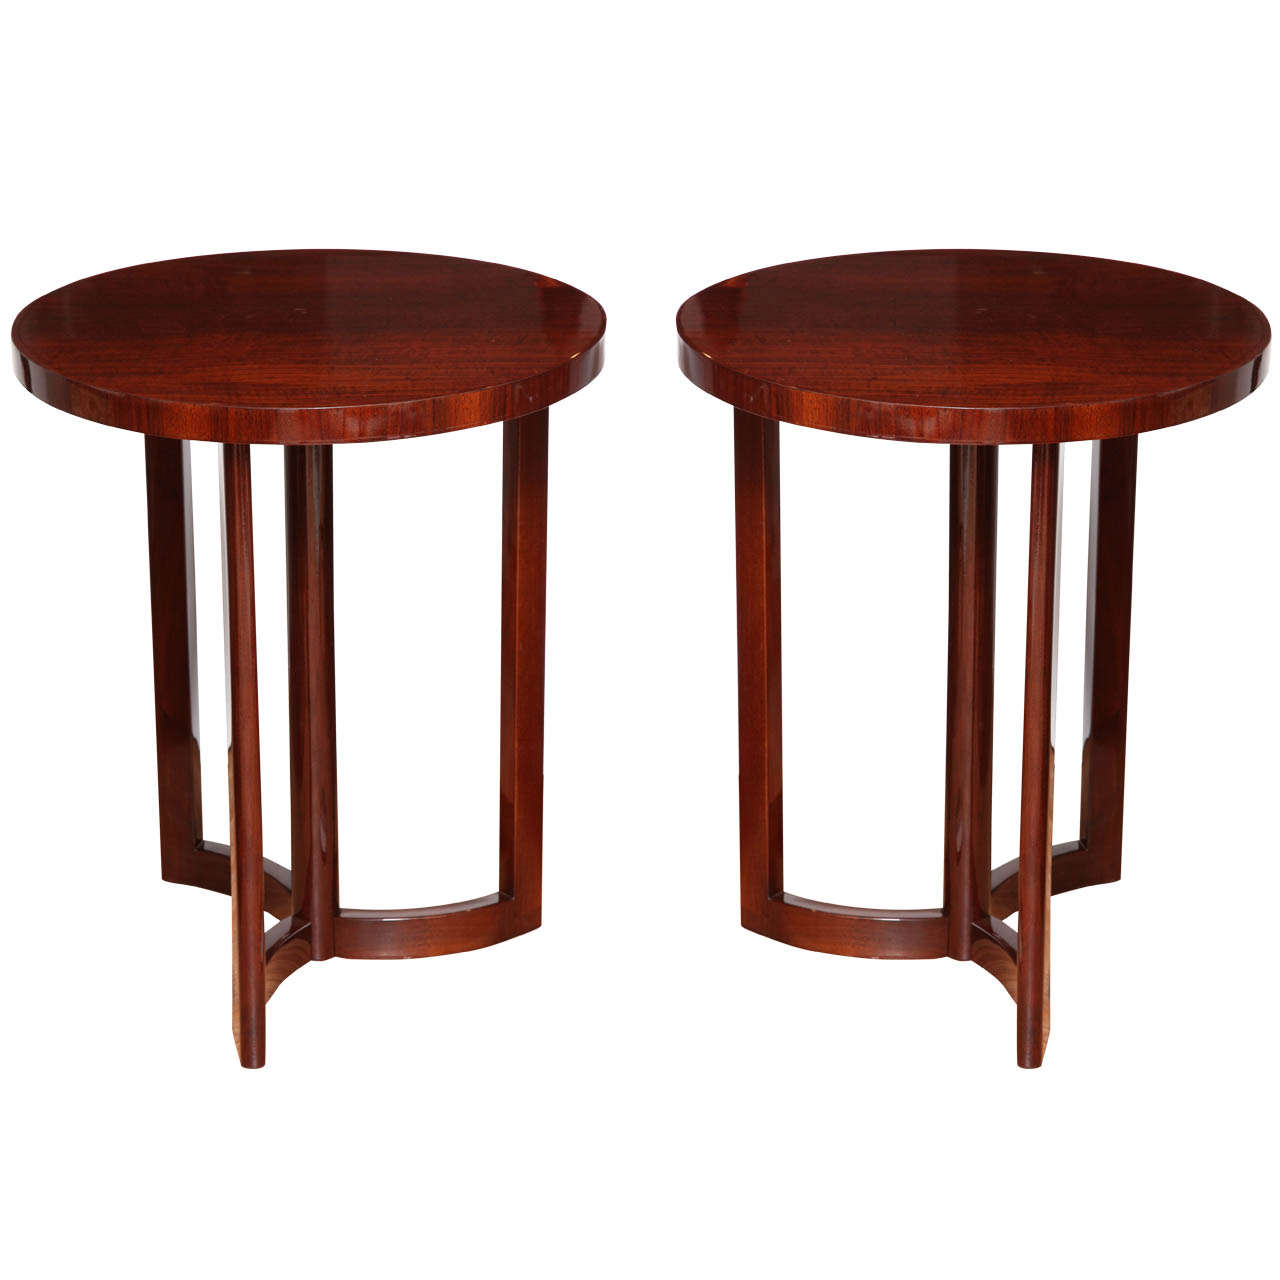 Pair of Art Deco Machine Age Tables in a Pinwheel Design from the Late 1940s